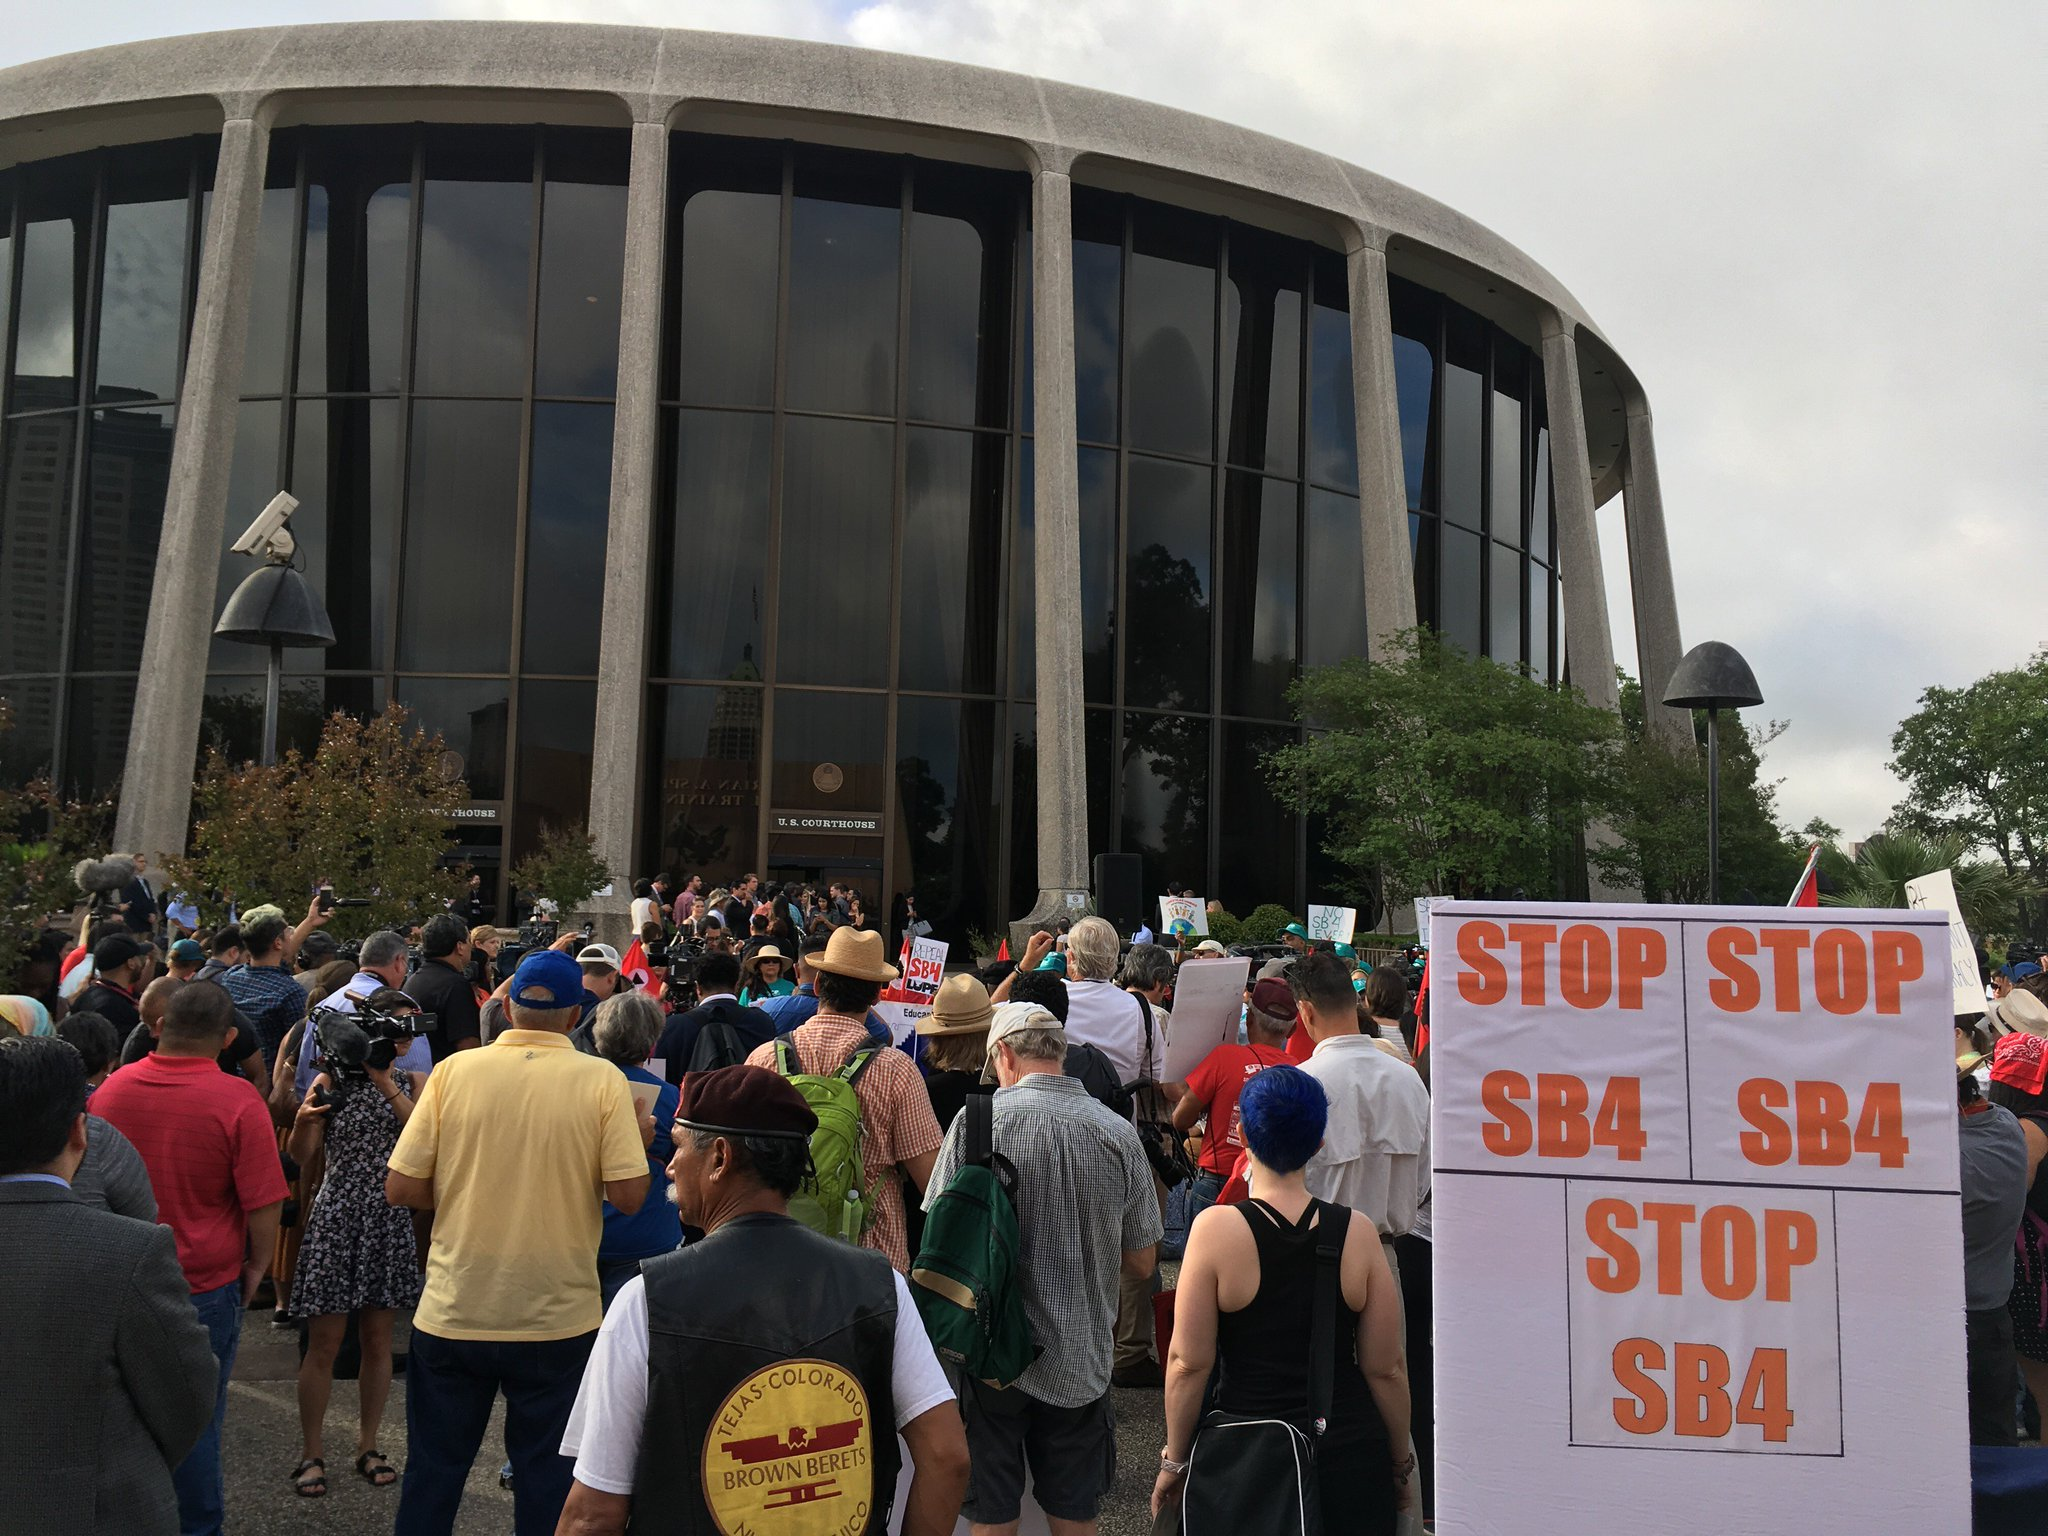 NEW: Protesters Surround Courthouse as First Major #SB4 Hearing Begins https://t.co/bgv8om5sZN https://t.co/nbcKhuLs77